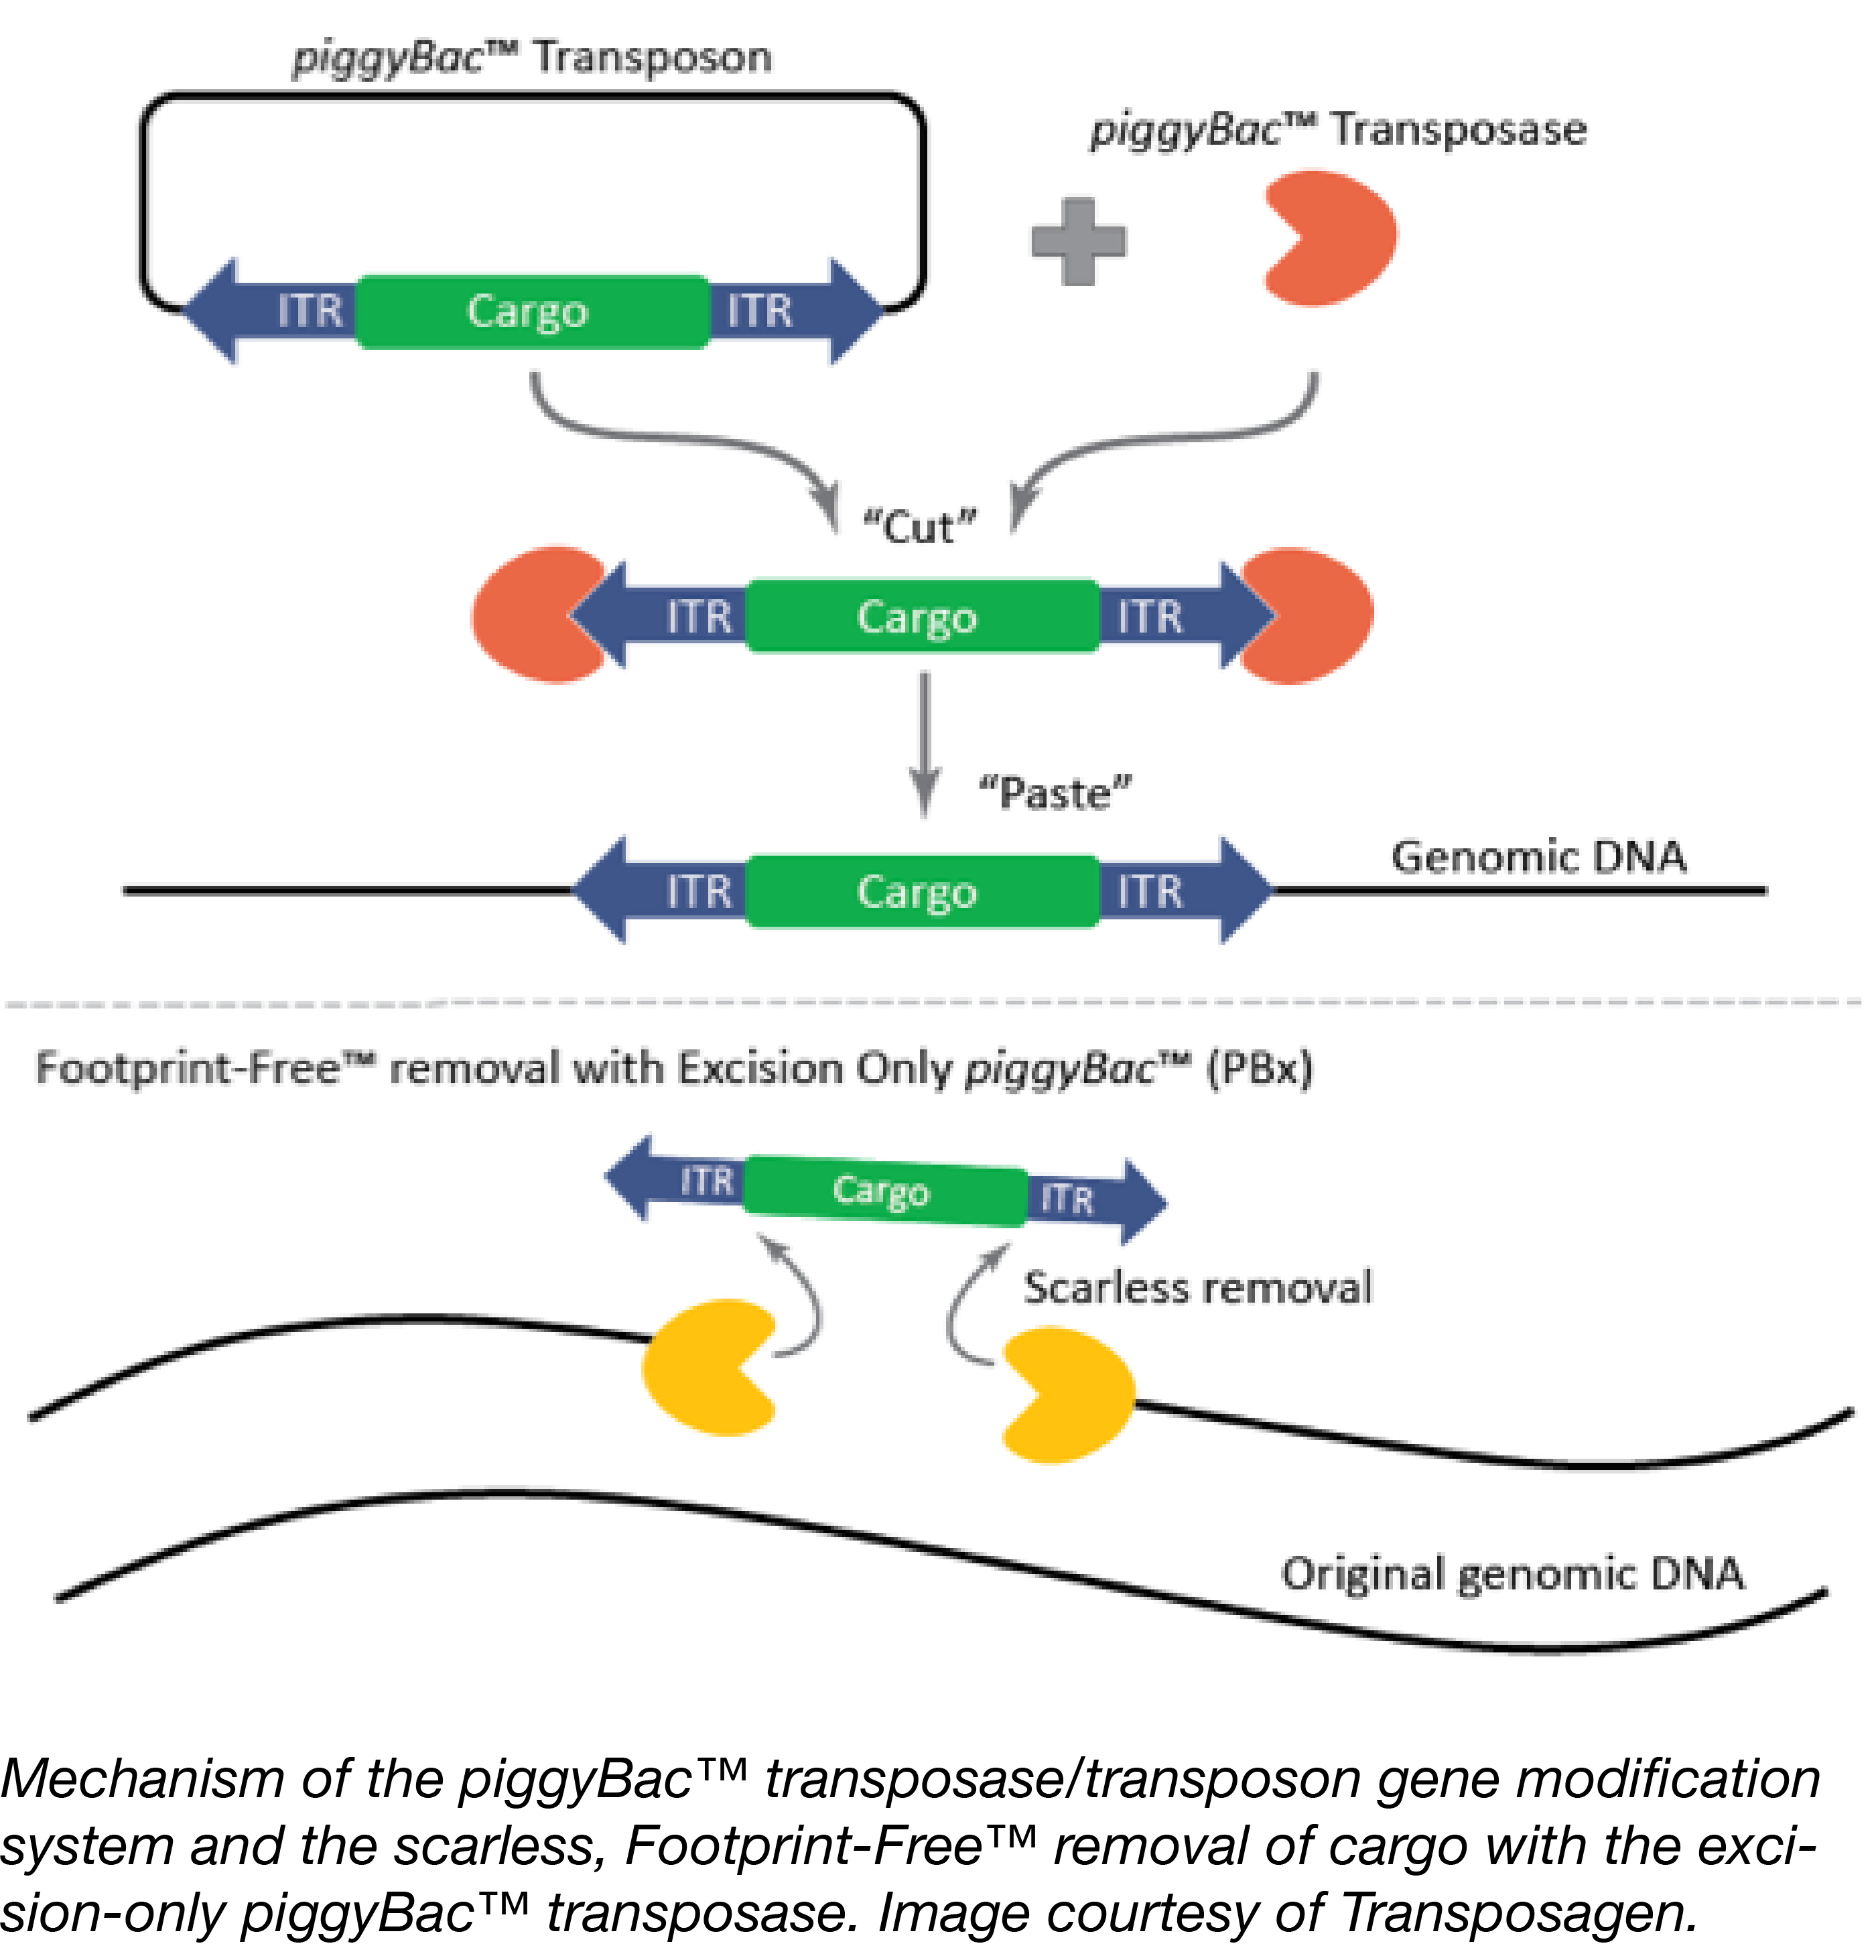 paggyBac transposon integration and removal